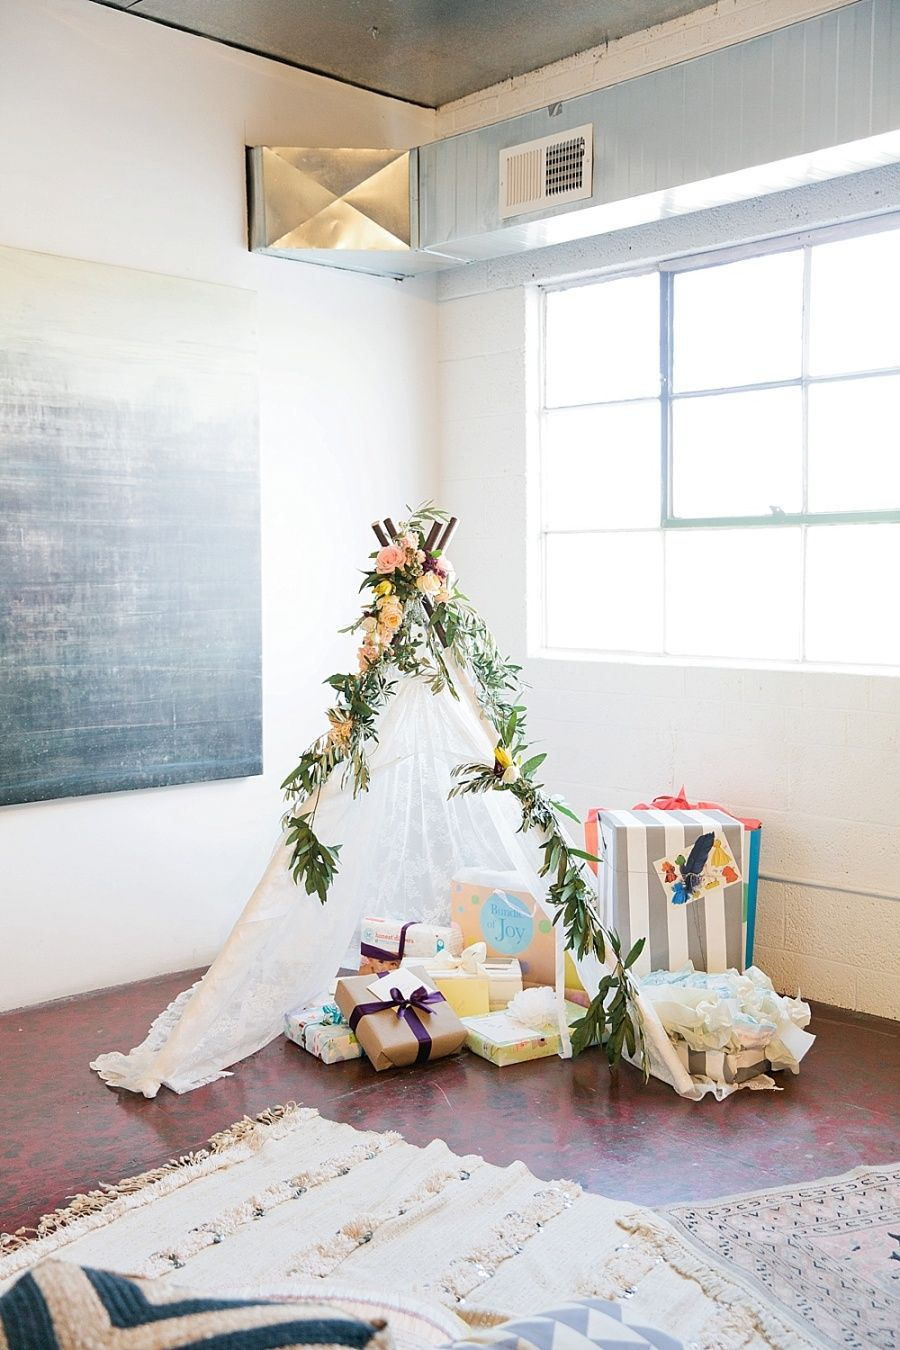 15 Chic, Sophisticated, Not-at-All Cheesy Baby ShowerIdeas 15 Chic, Sophisticated, Not-at-All Cheesy Baby ShowerIdeas new photo